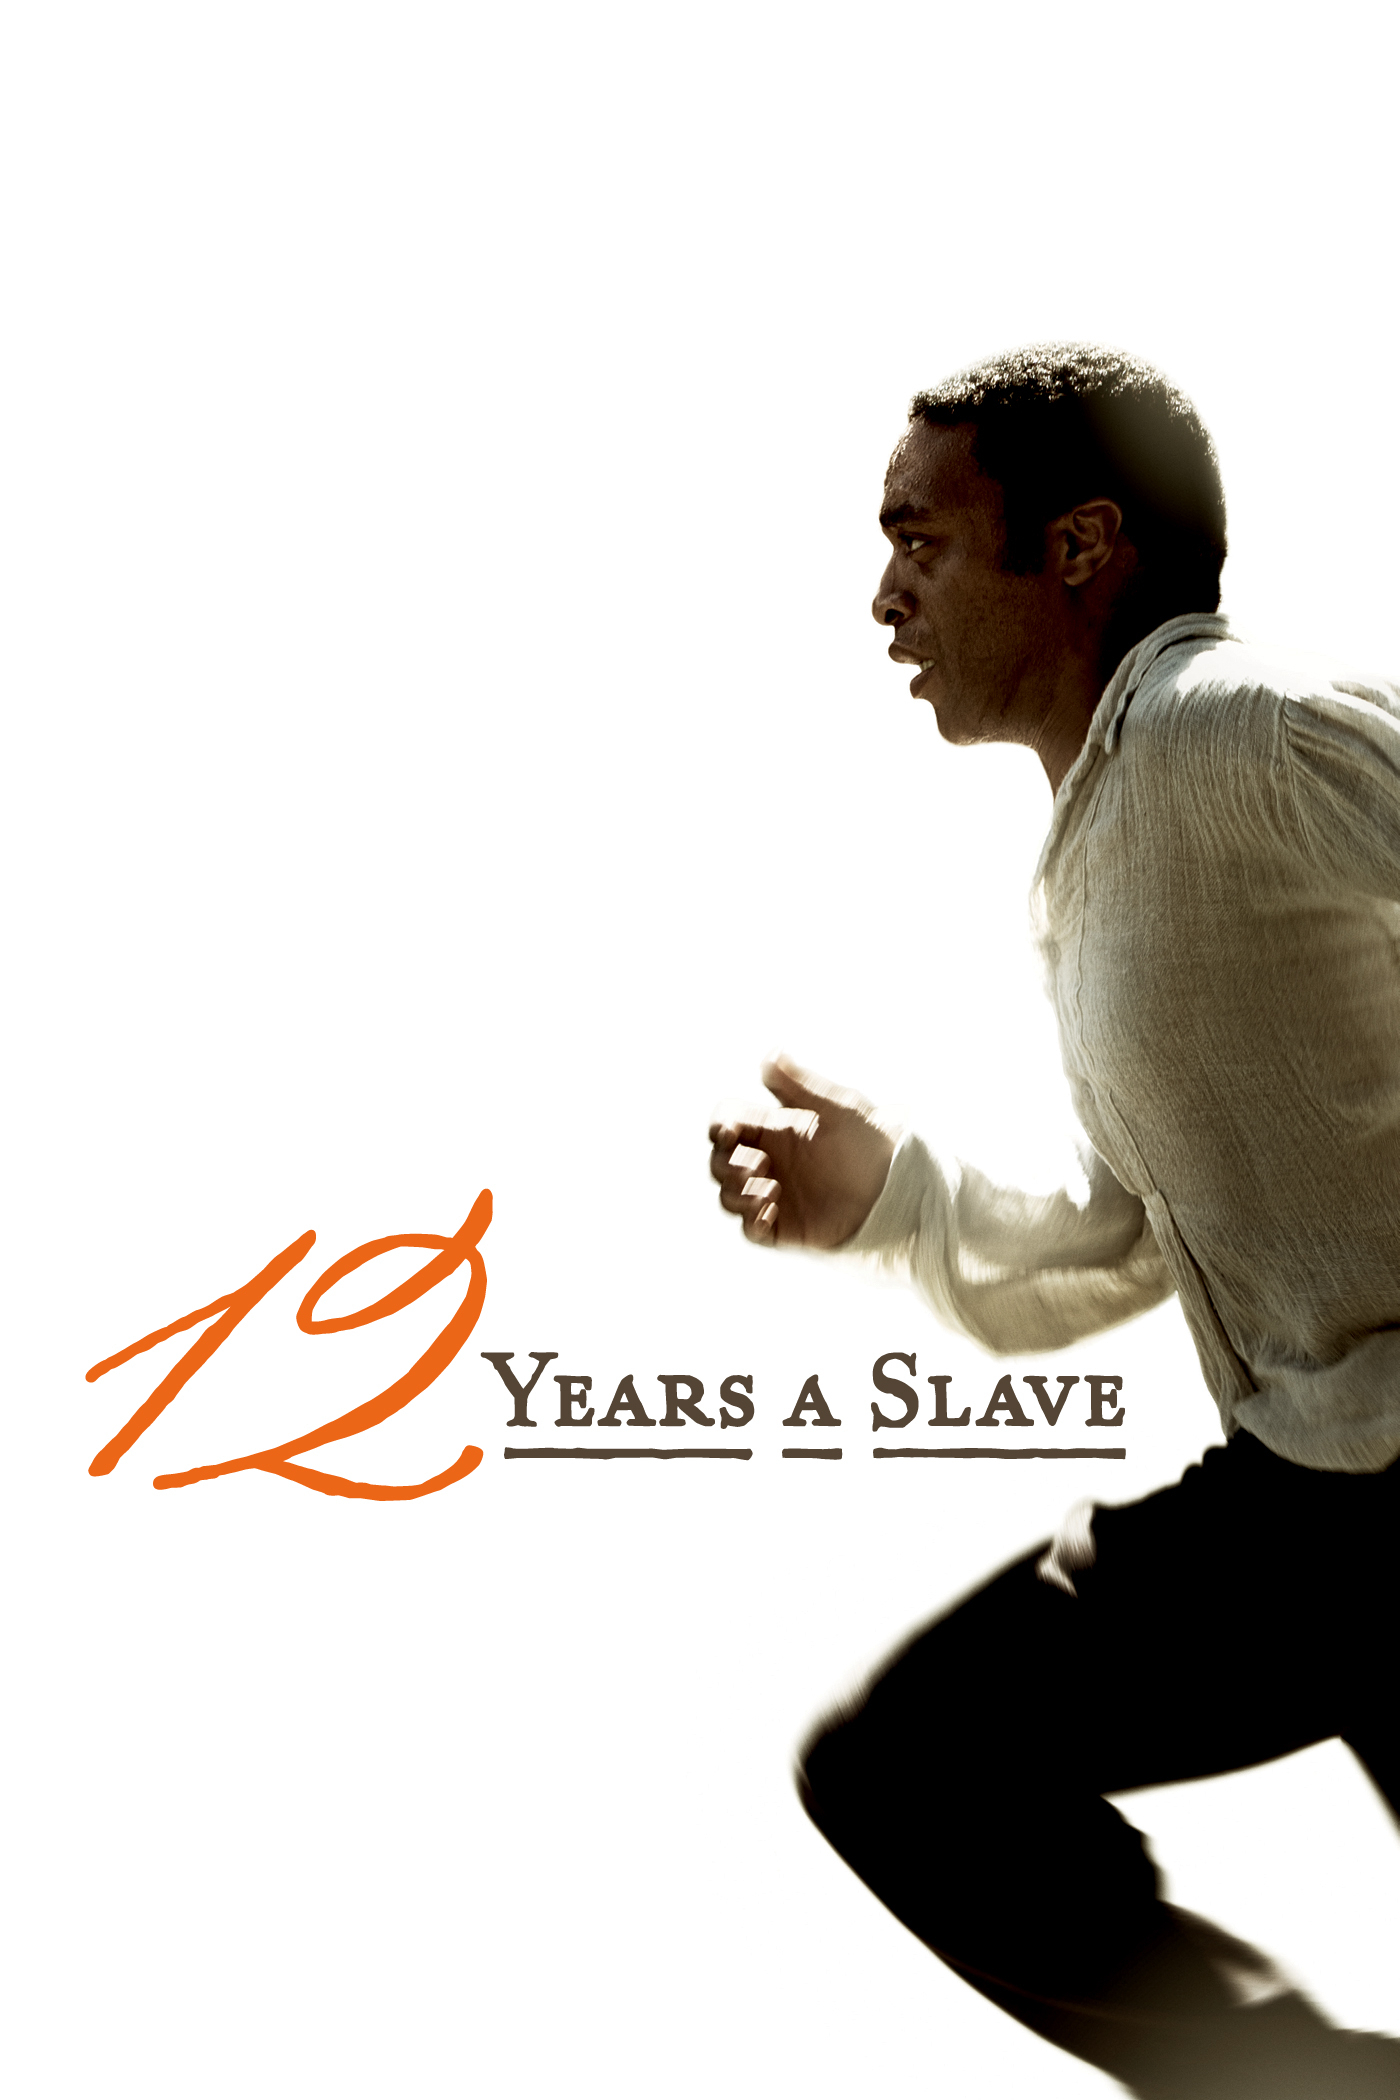 12 Years A Slave | 5 Movies to Educate Yourself on Racial Justice